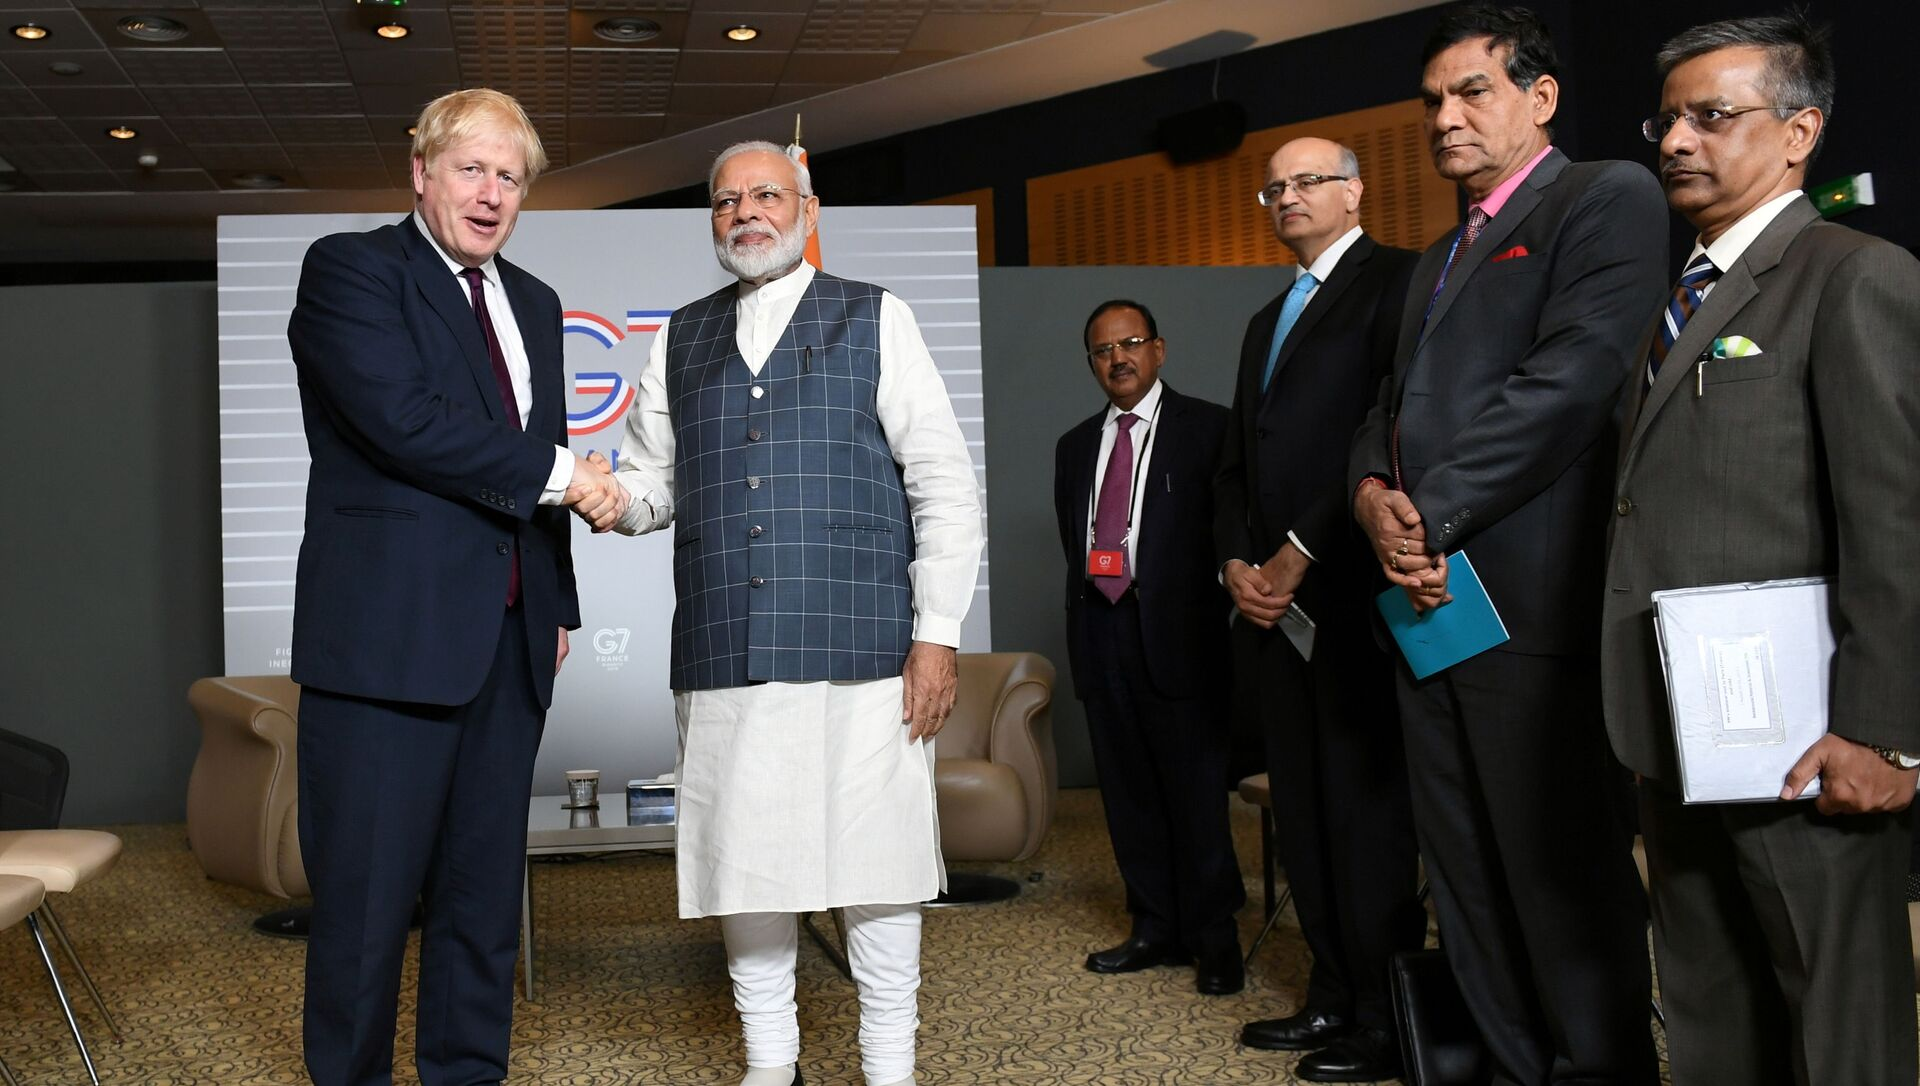 FILE PHOTO: Britain's Prime Minister Boris Johnson meets Indian Prime Minister Narendra Modi at a bilateral meeting during the G7 summit in Biarritz, France August 25, 2019. - Sputnik International, 1920, 23.07.2021